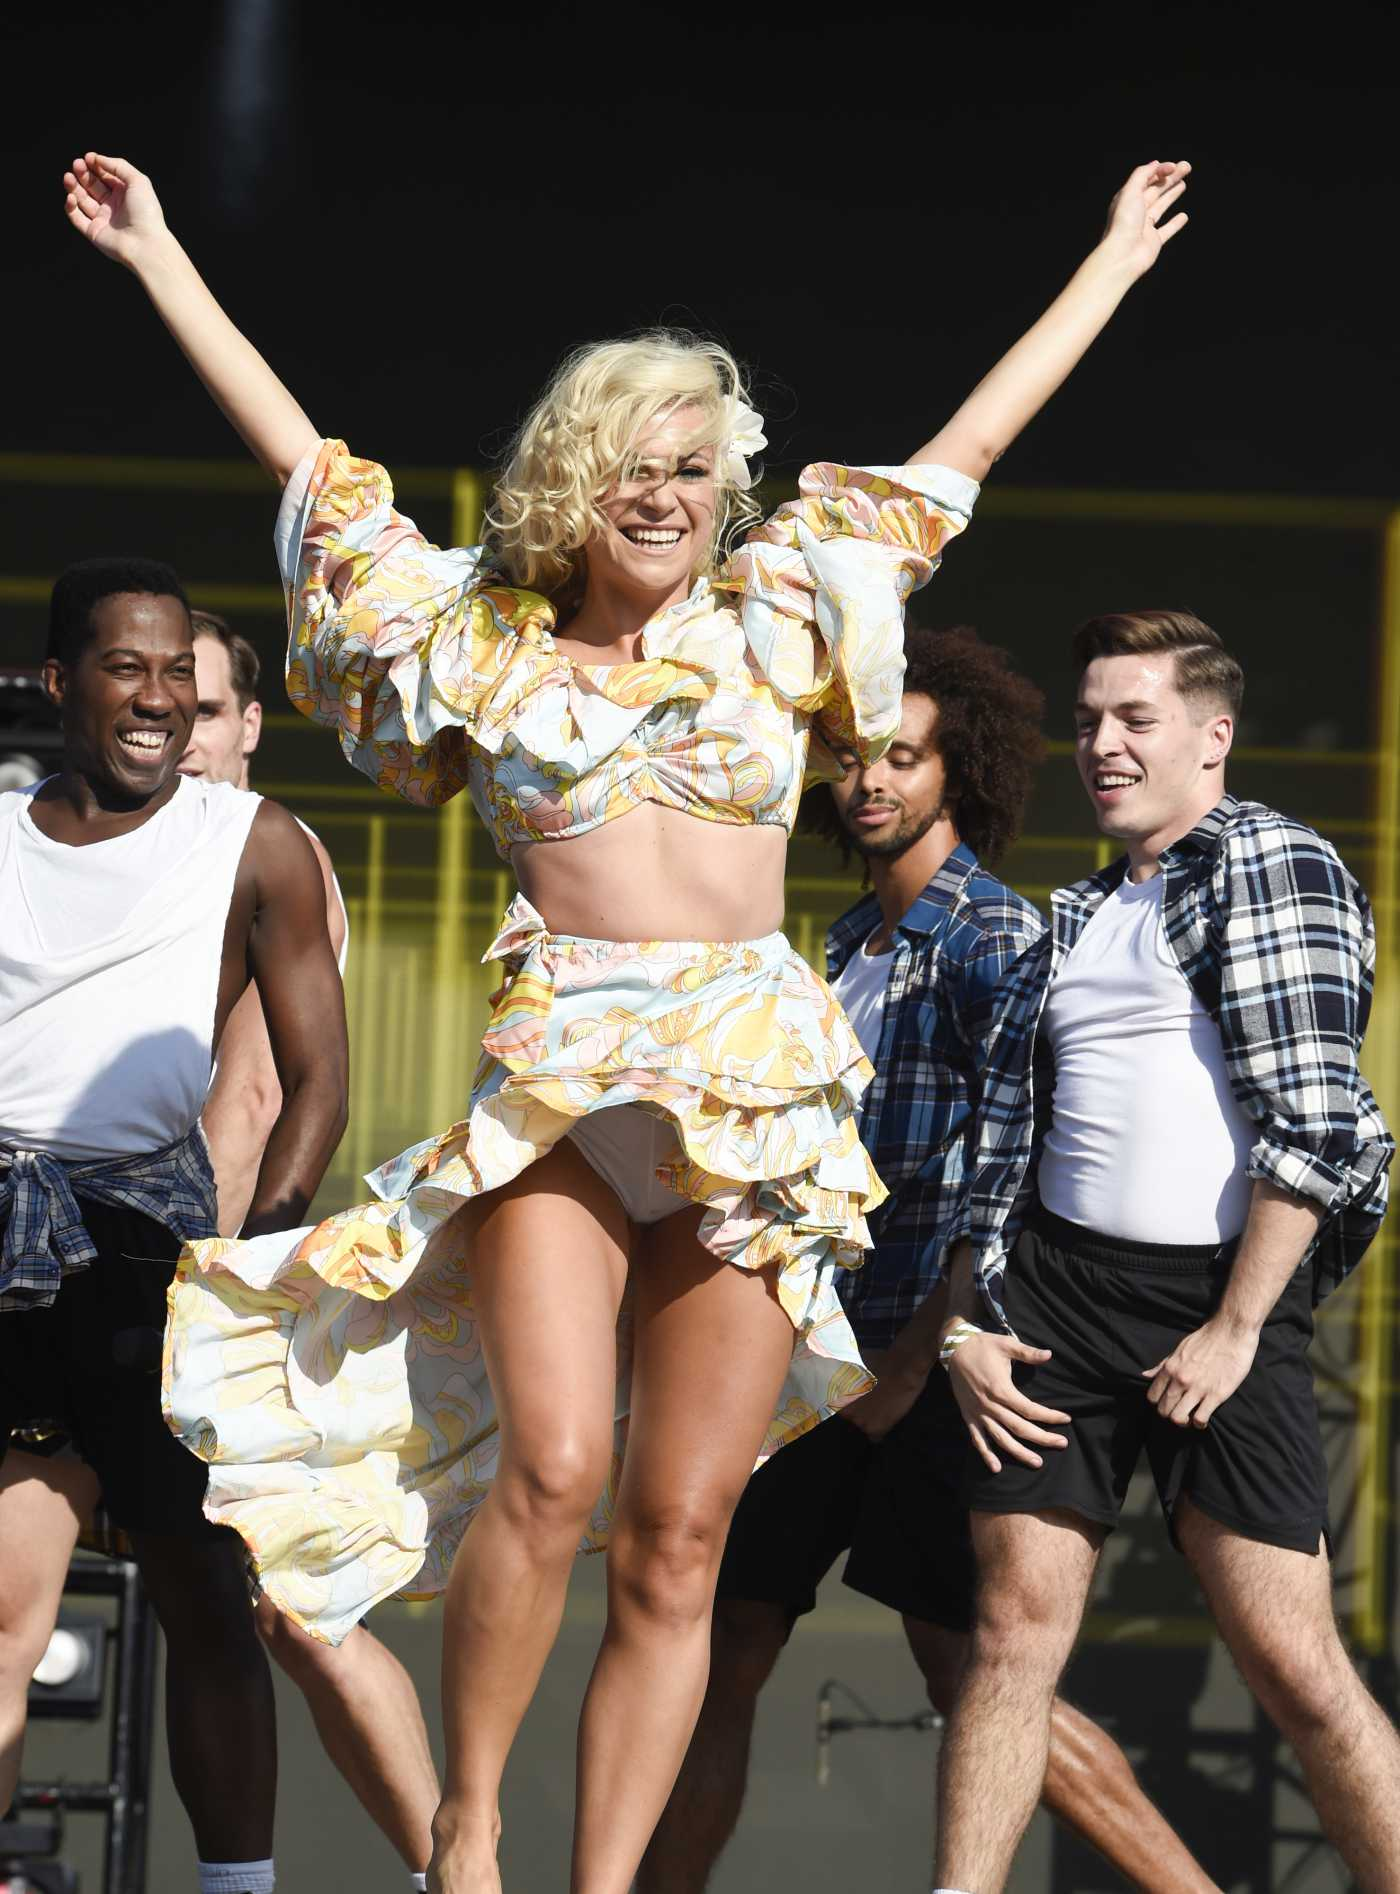 Pixie Lott Performs at 2019 Manchester Pride Festival in Manchester 08/25/2019